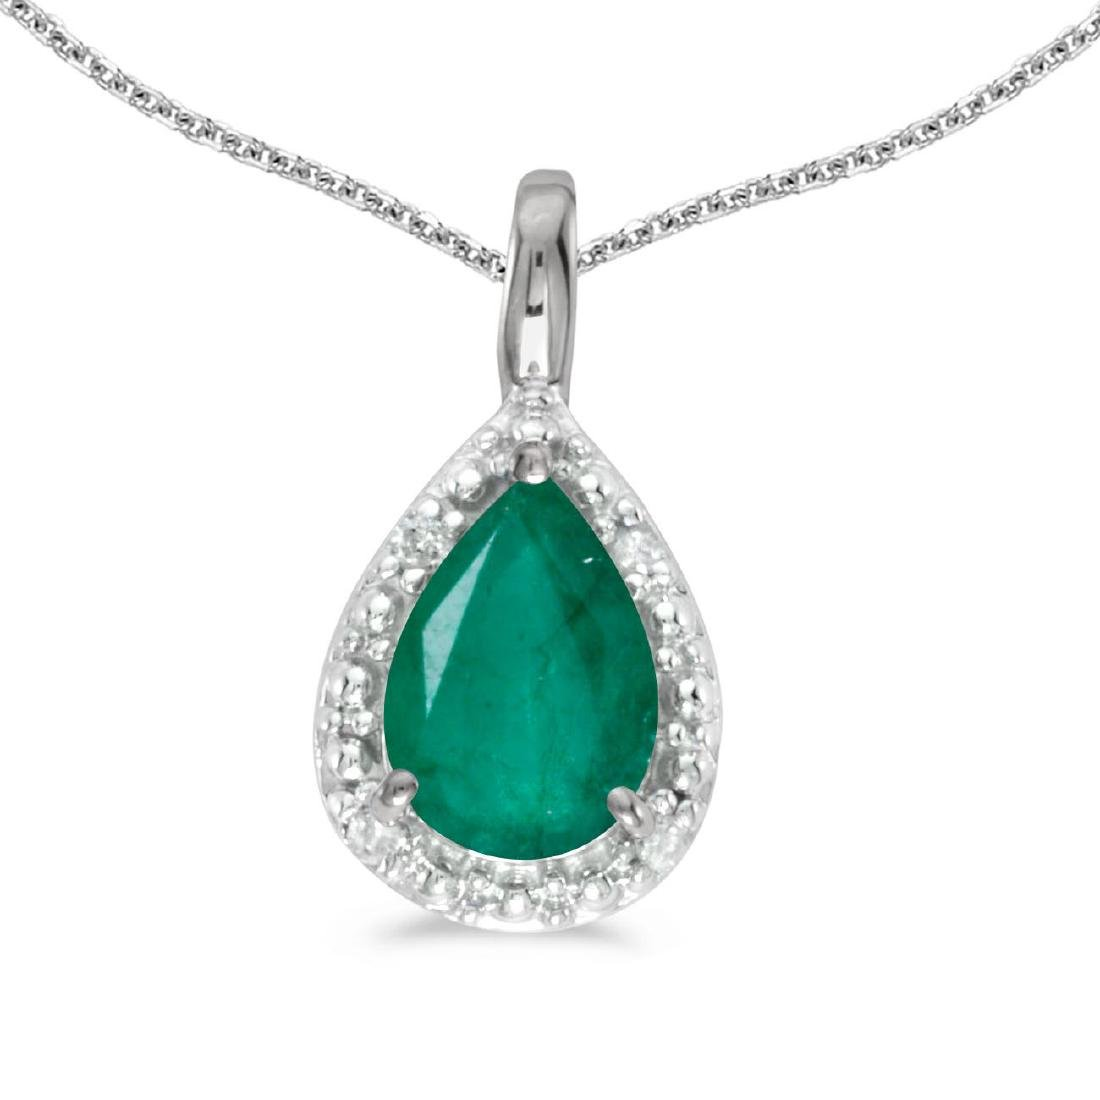 Certified 10k White Gold Pear Emerald Pendant 0.64 CTW